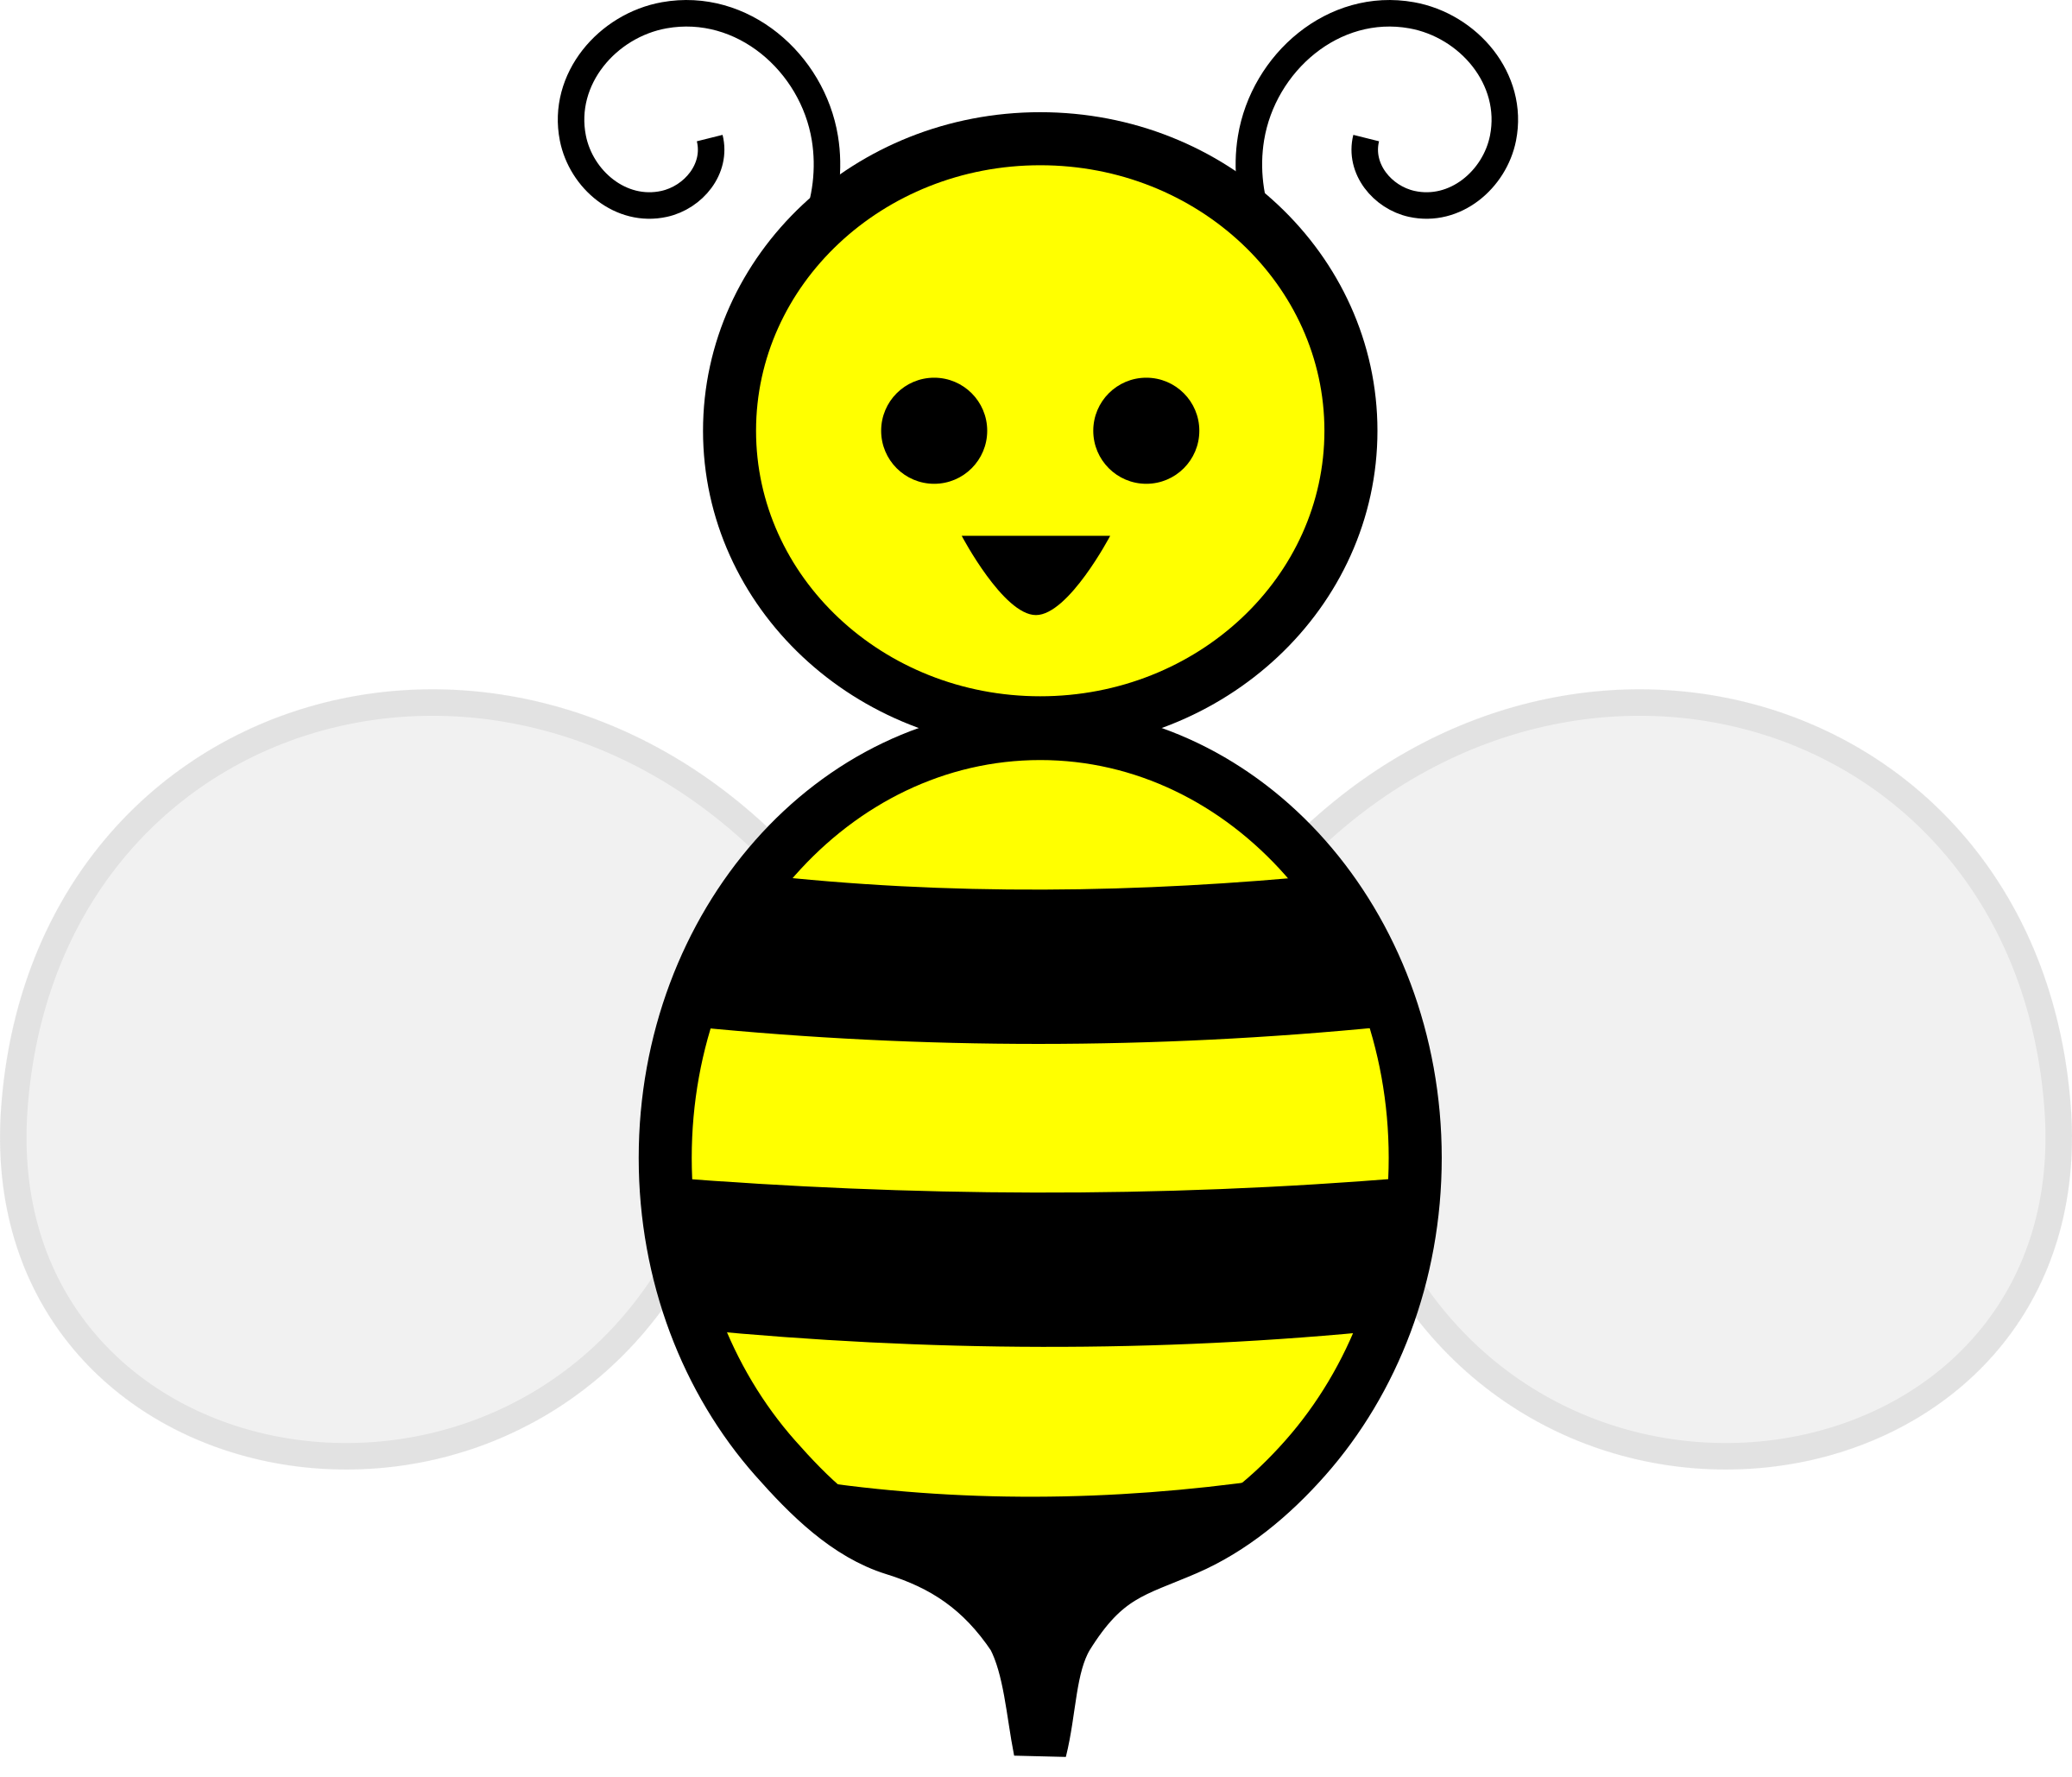 Bees transparent female. Collection of free fecial